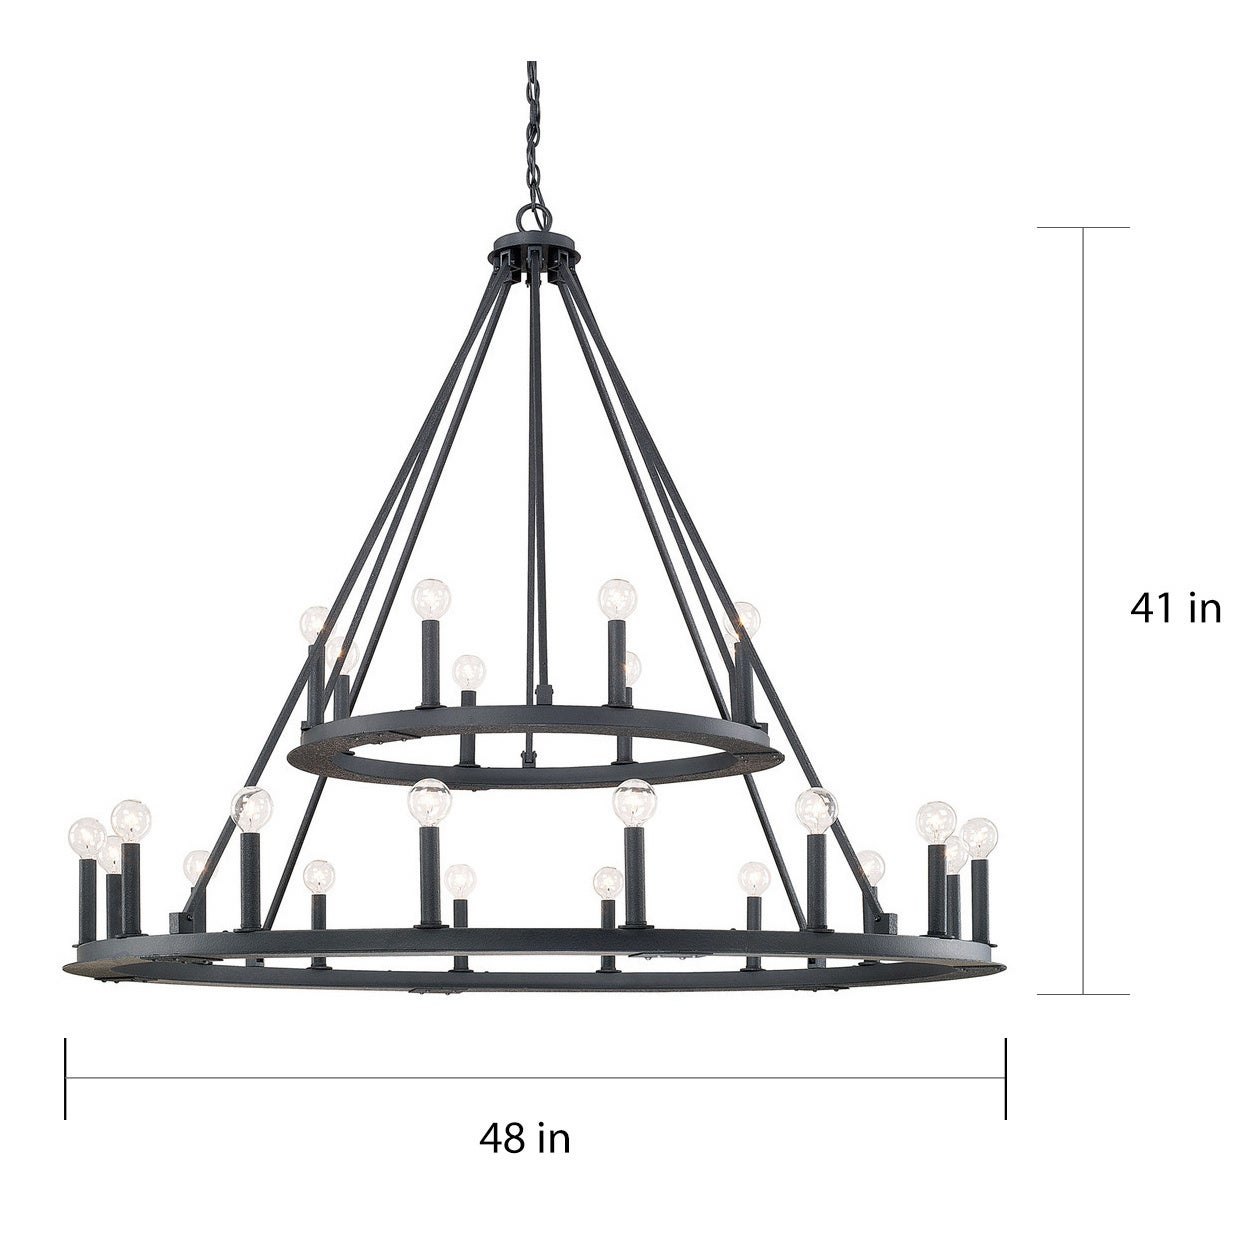 Shop capital lighting pearson collection 24 light black iron chandelier free shipping today overstock com 11771739